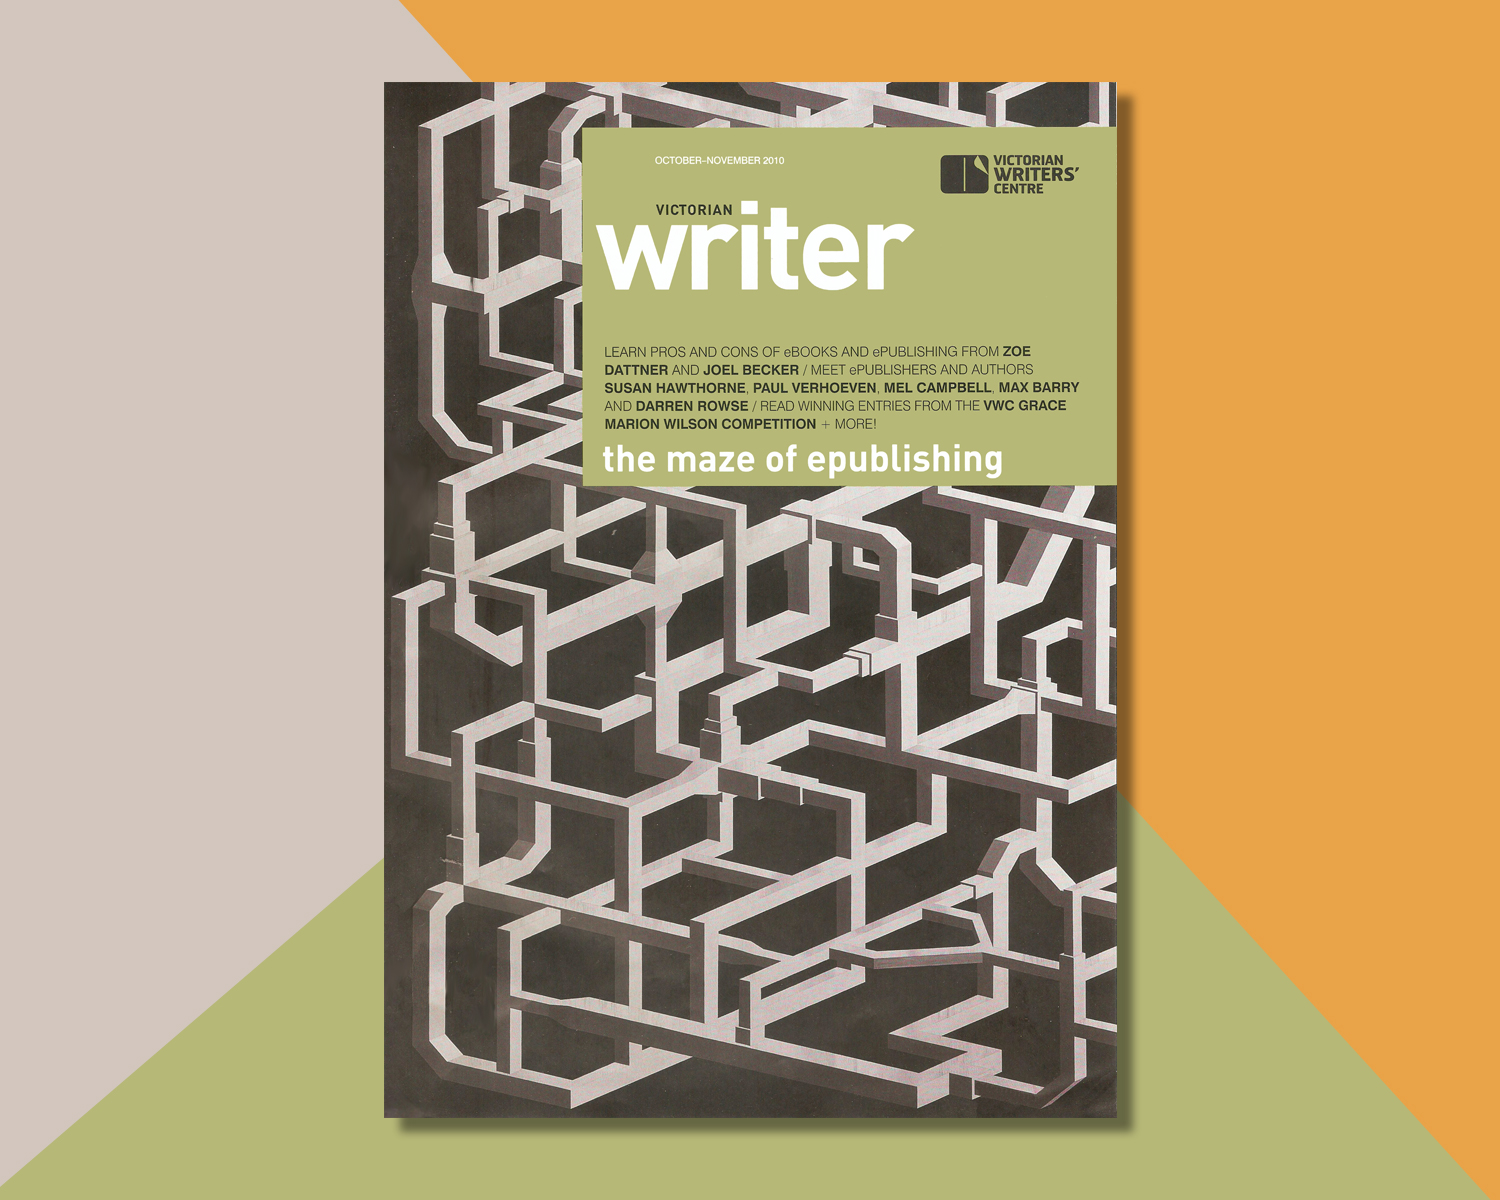 Cover of the Victorian Writer October edition 2010